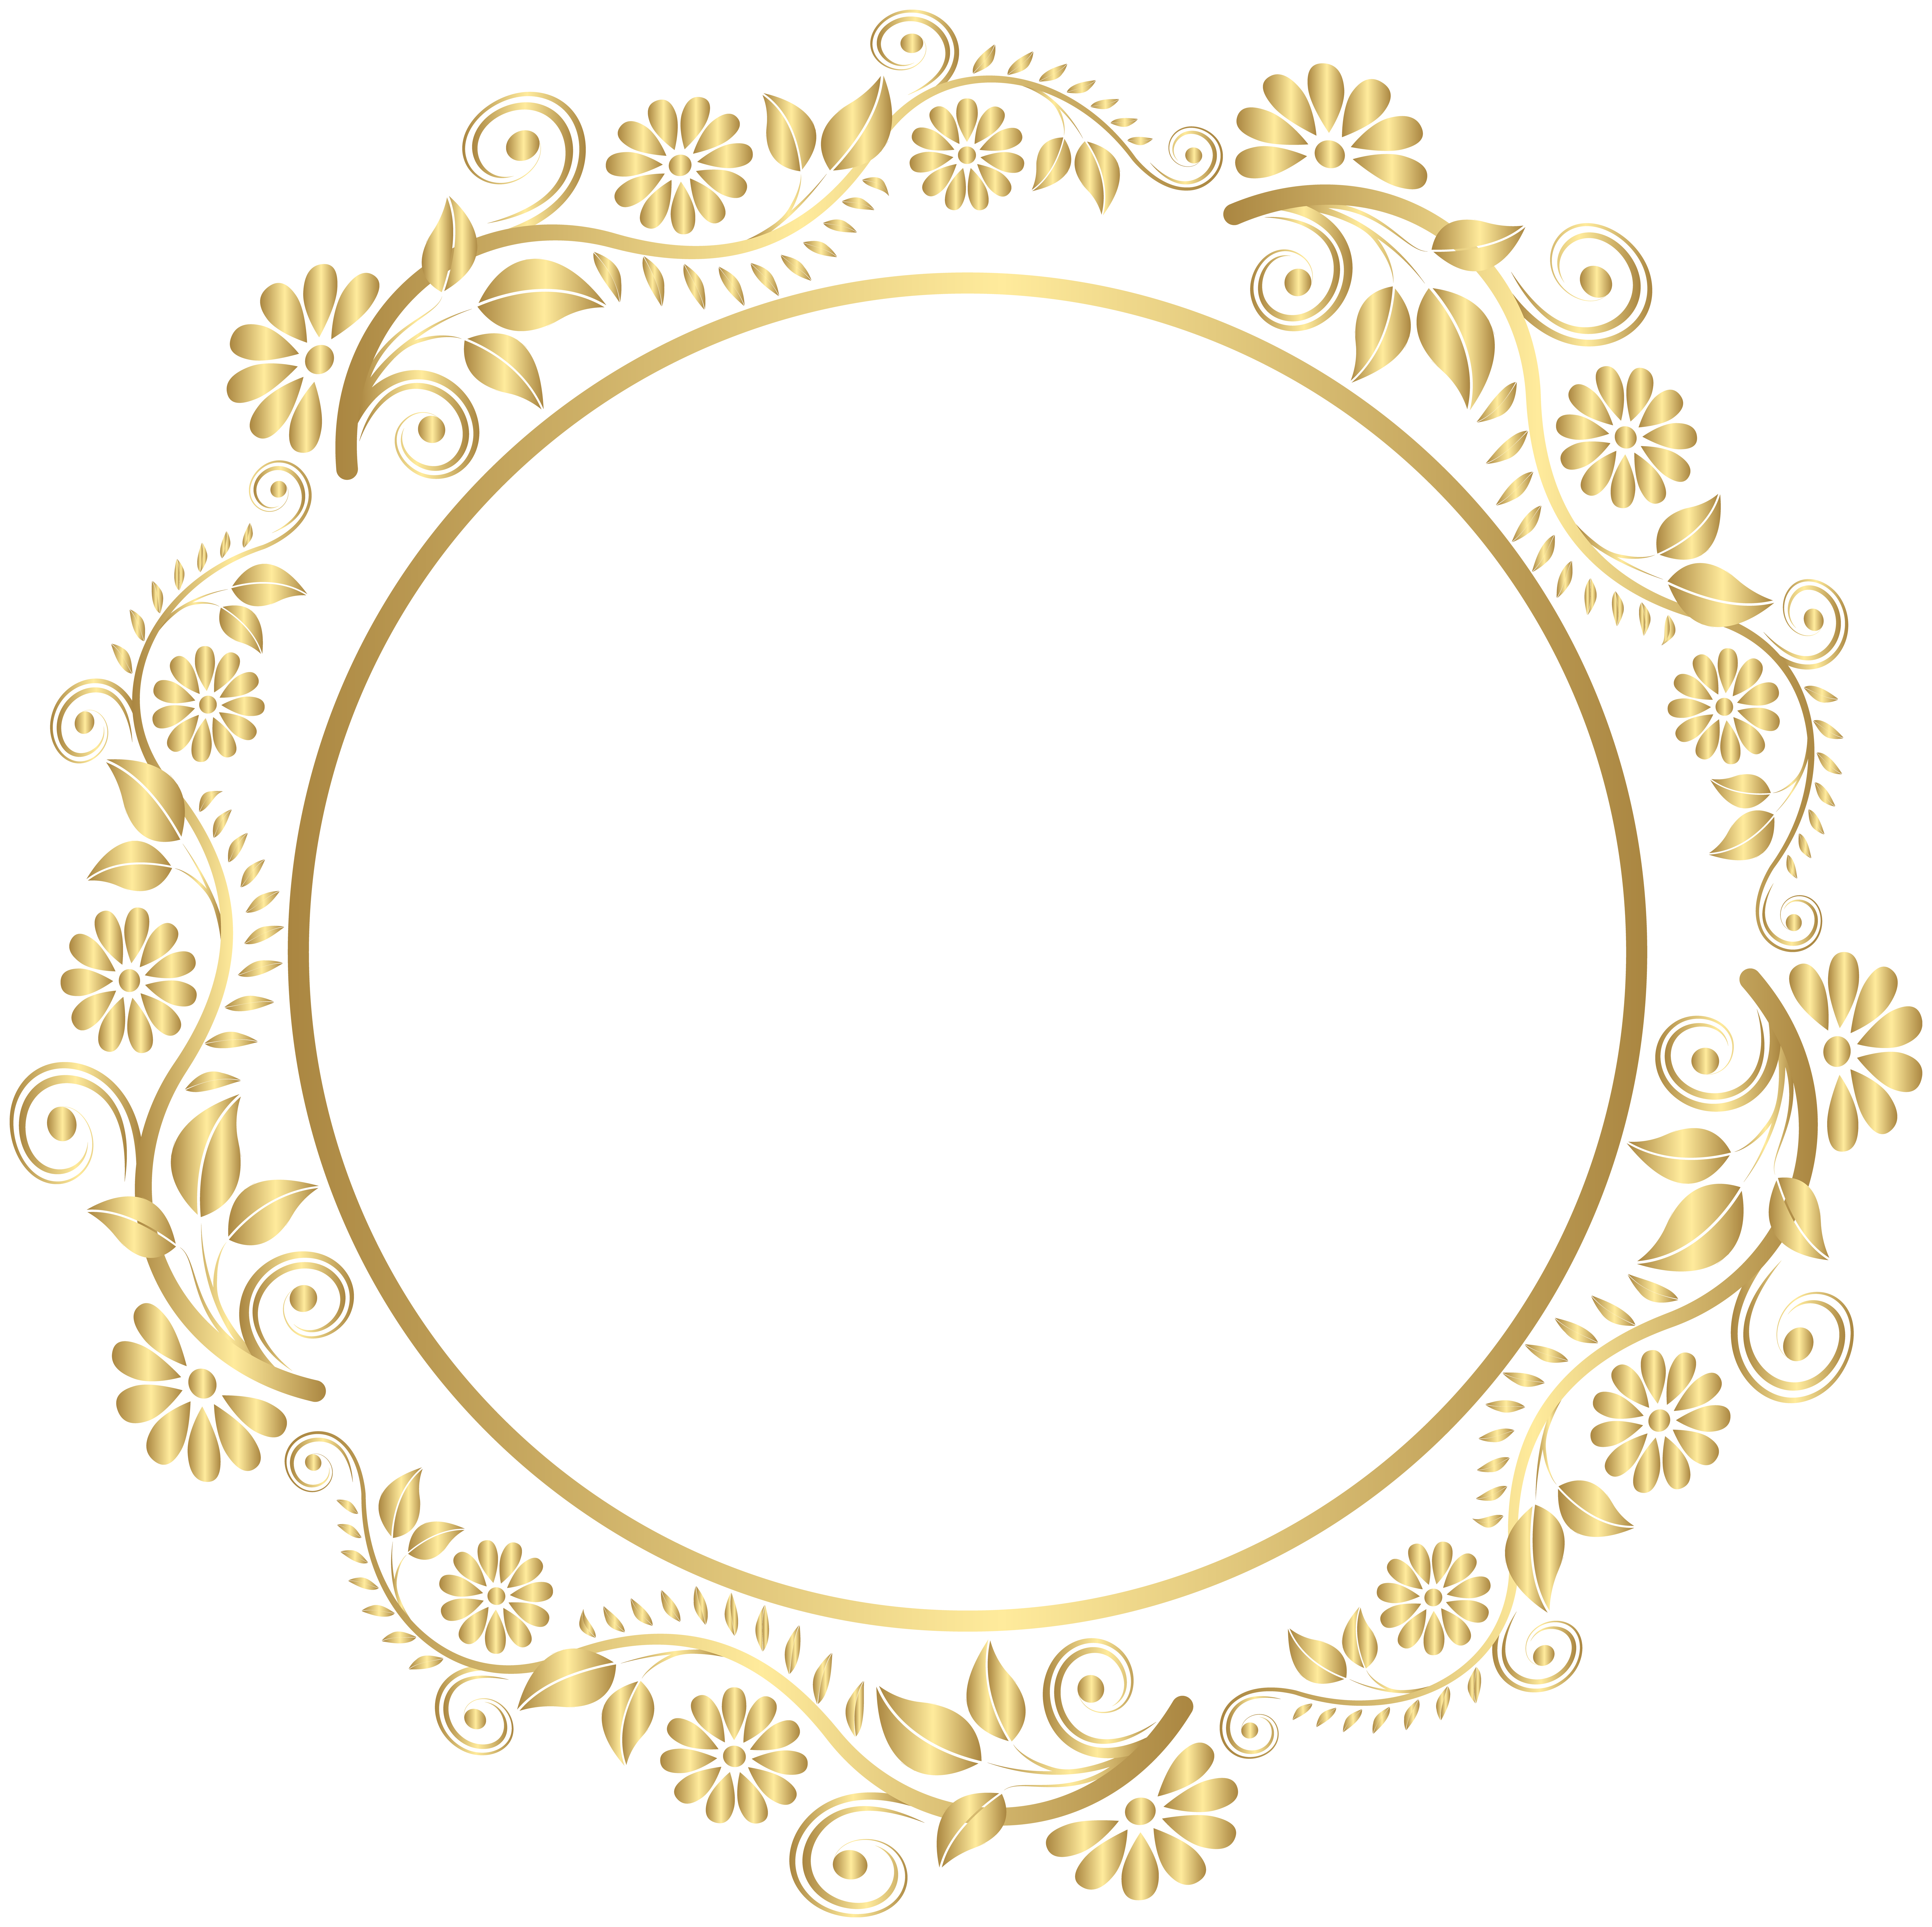 Round circle gold border with white center clipart clipart freeuse stock Gold Frame Clipart | Free download best Gold Frame Clipart on ... clipart freeuse stock